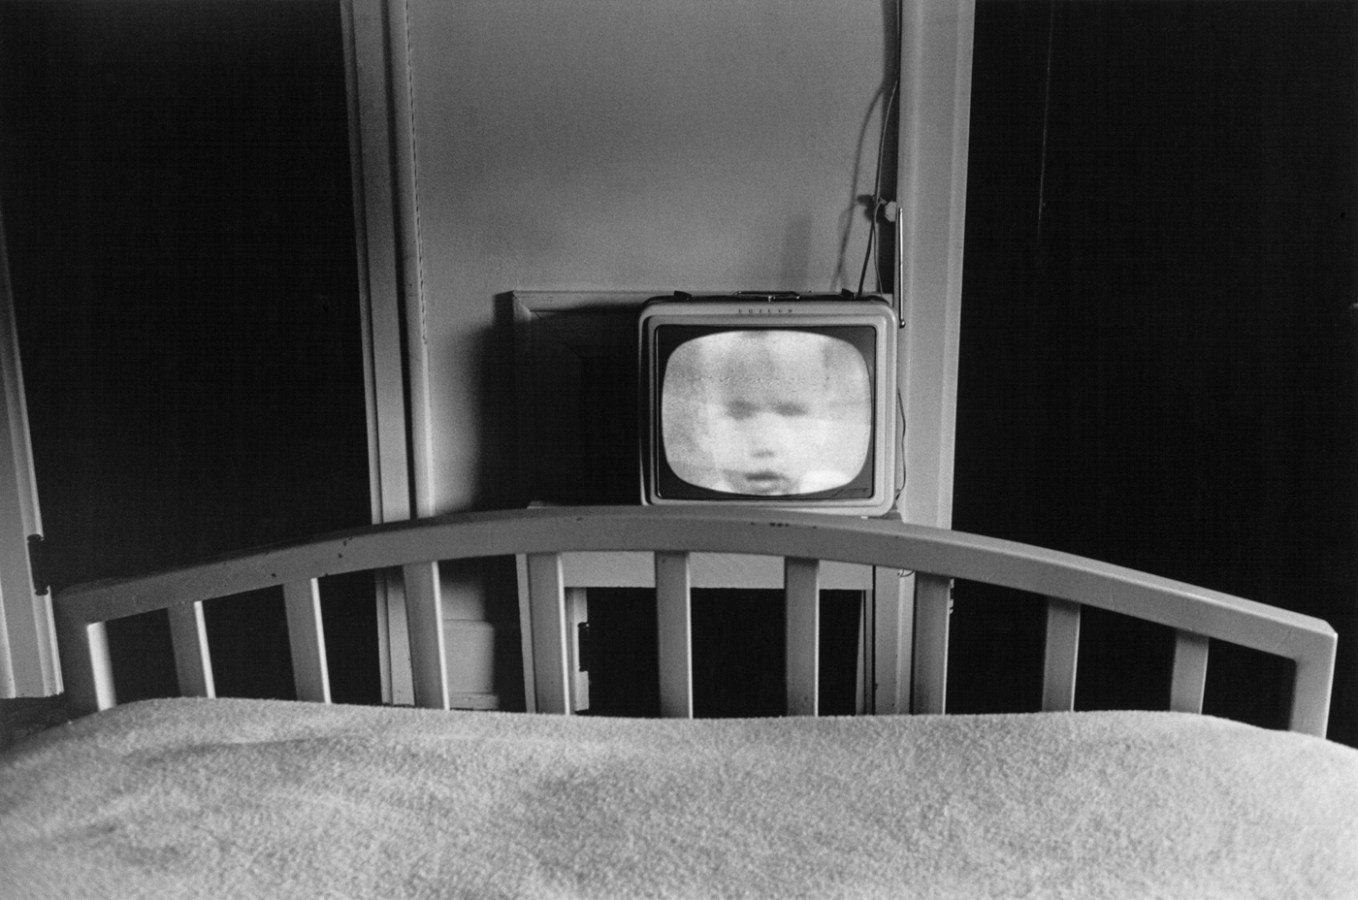 Black-and-white photograph of the bottom edge of a bed and a television with a childs face on screen